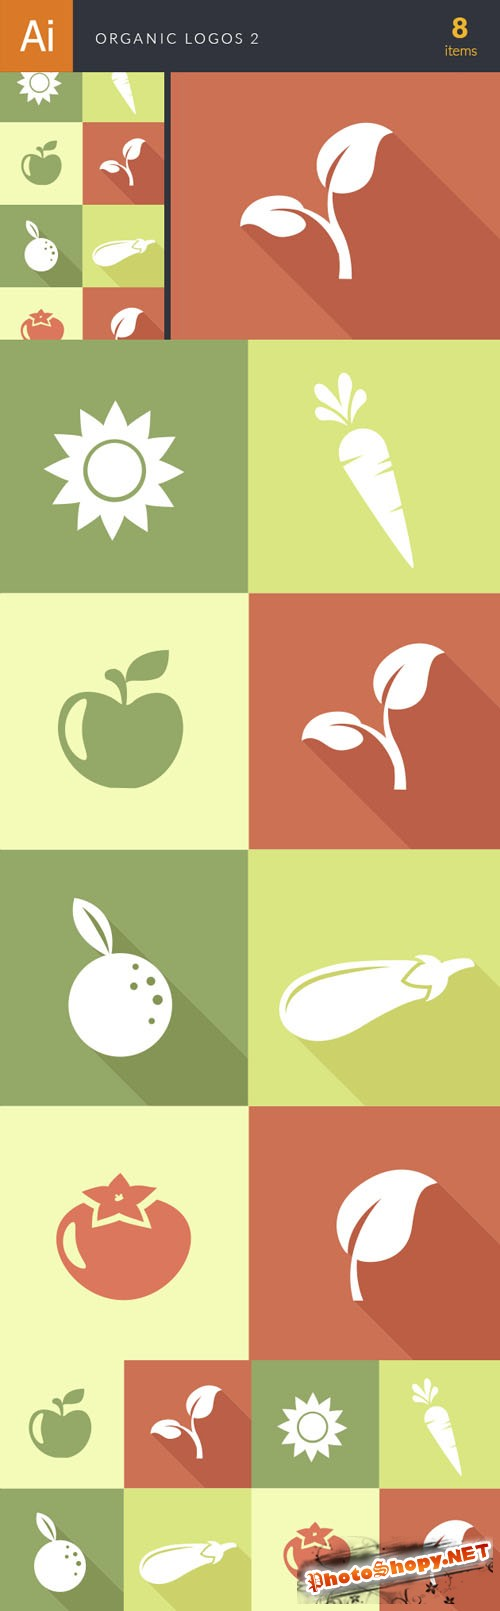 Organic Logos Vector Illustrations Pack 2